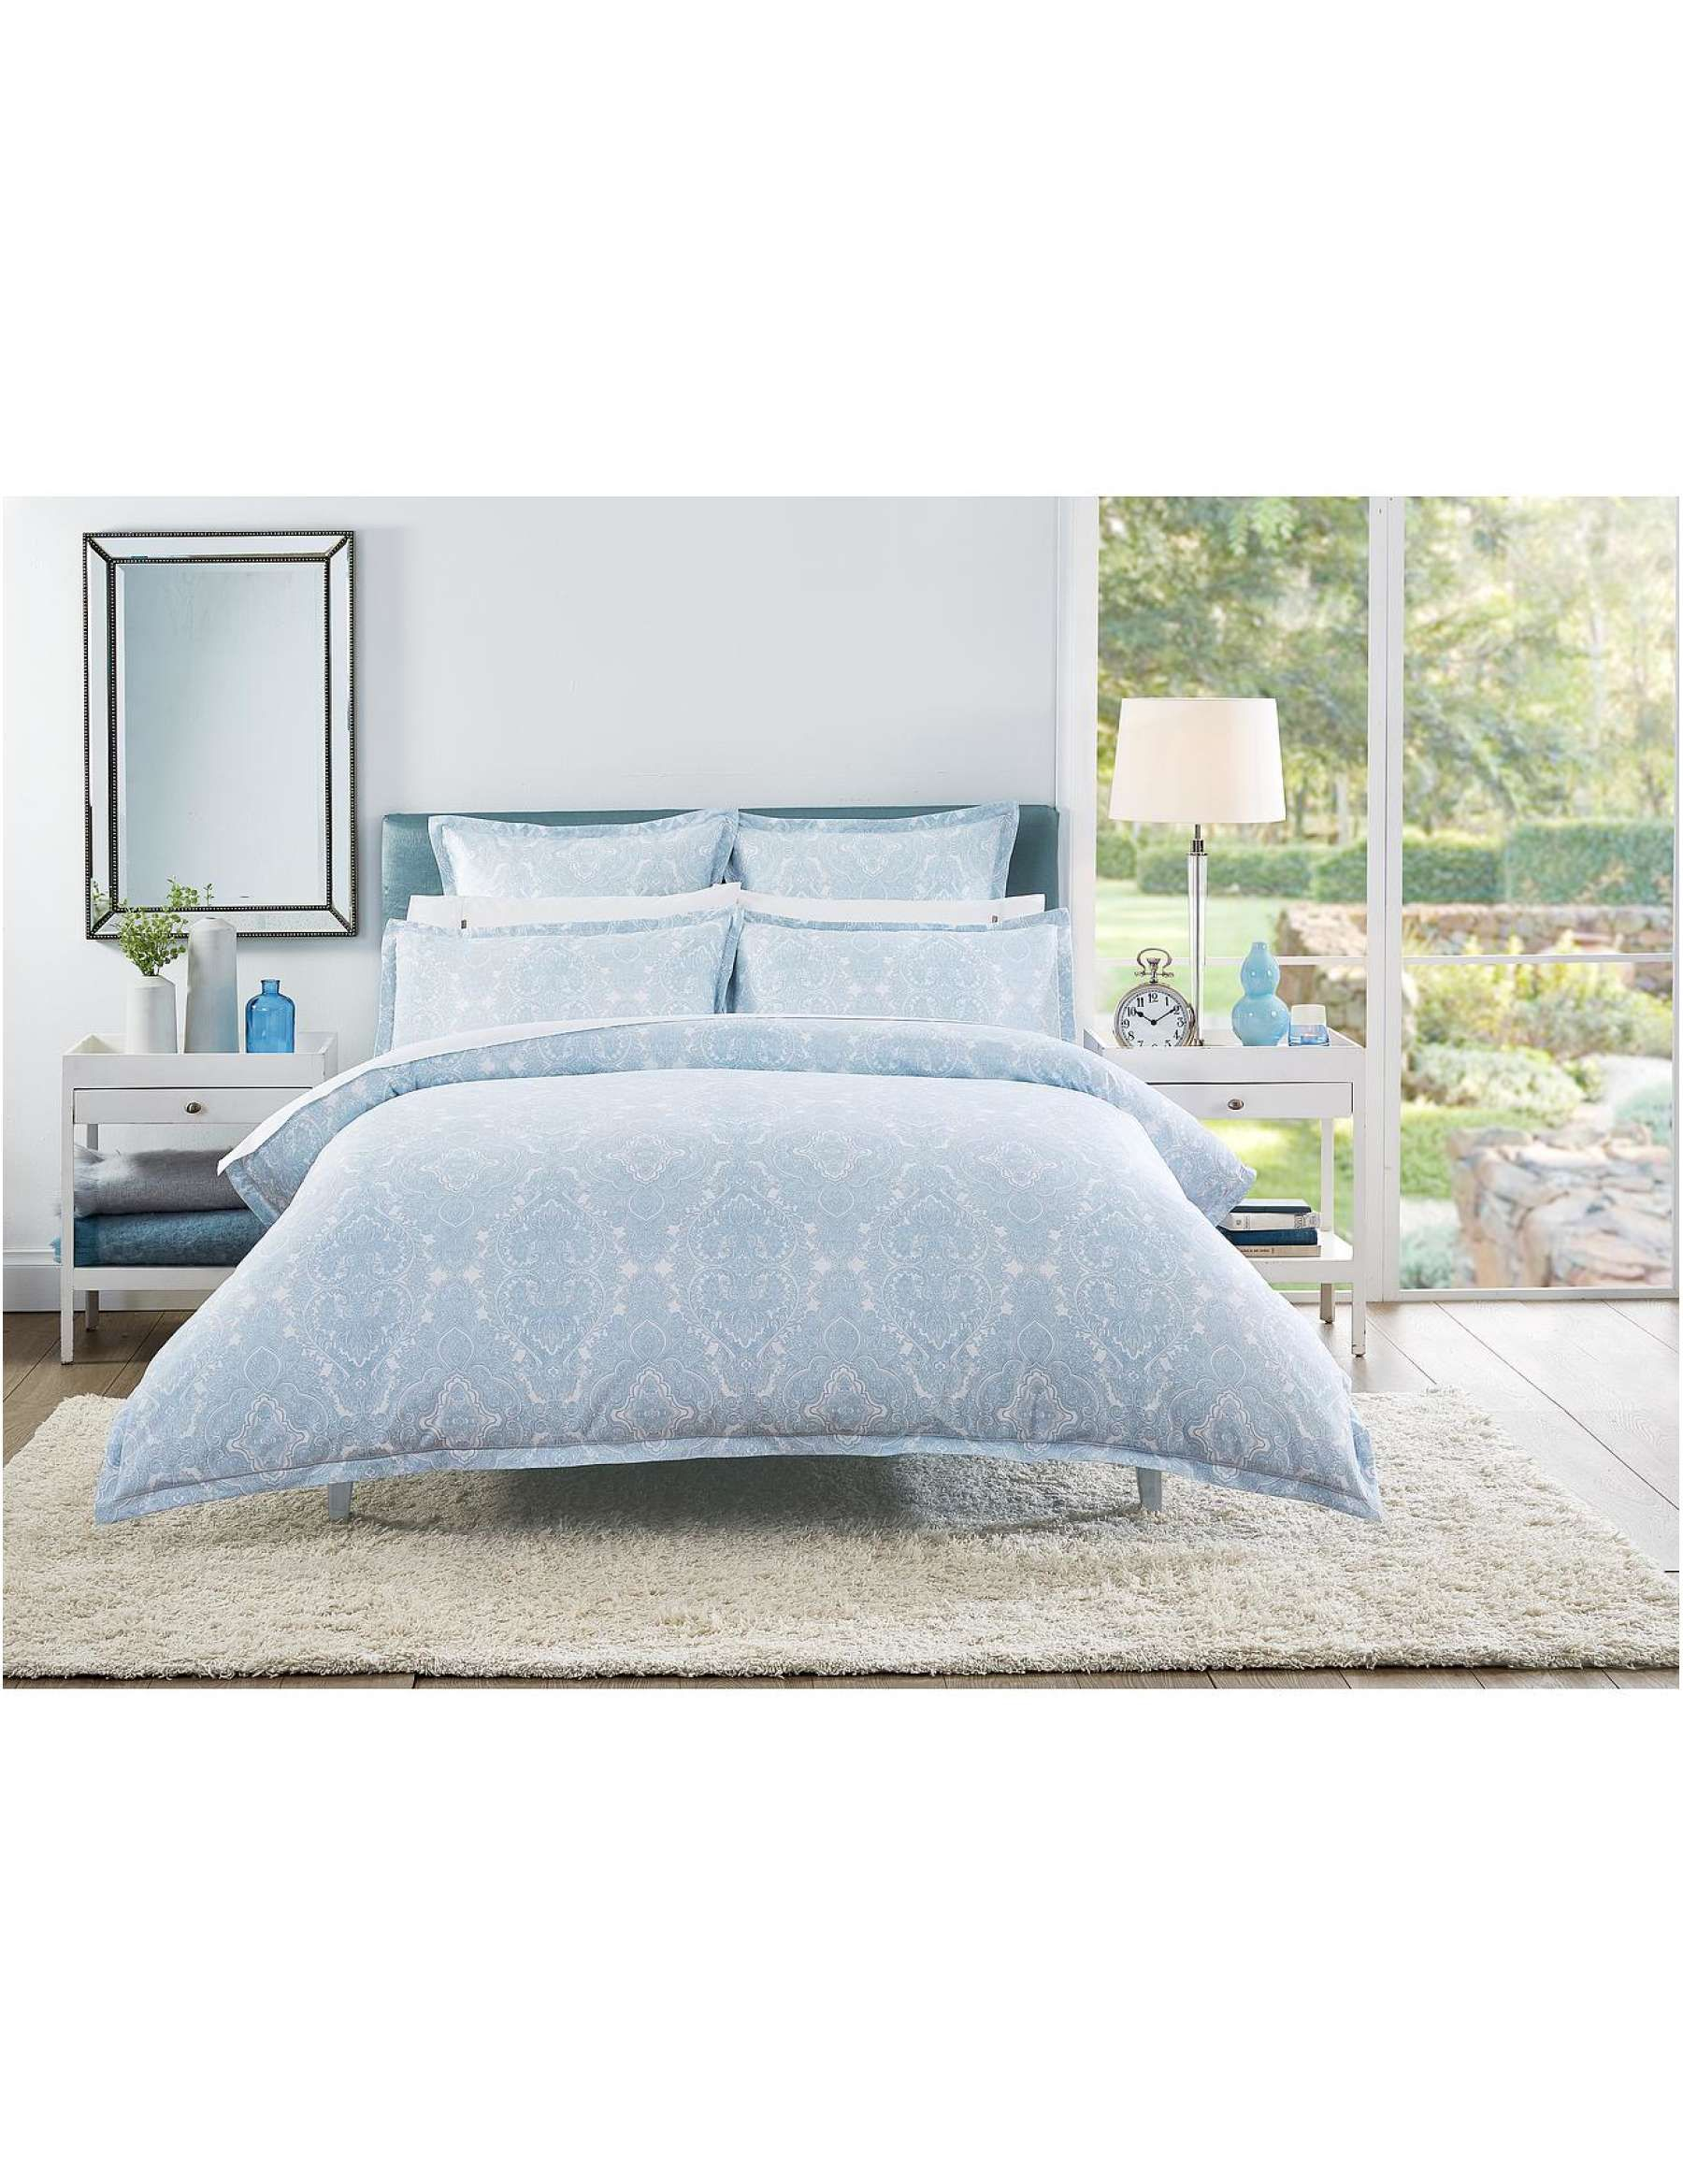 Good David Jones   Cotton House NINEVAH DOUBLE BED QUILT COVER